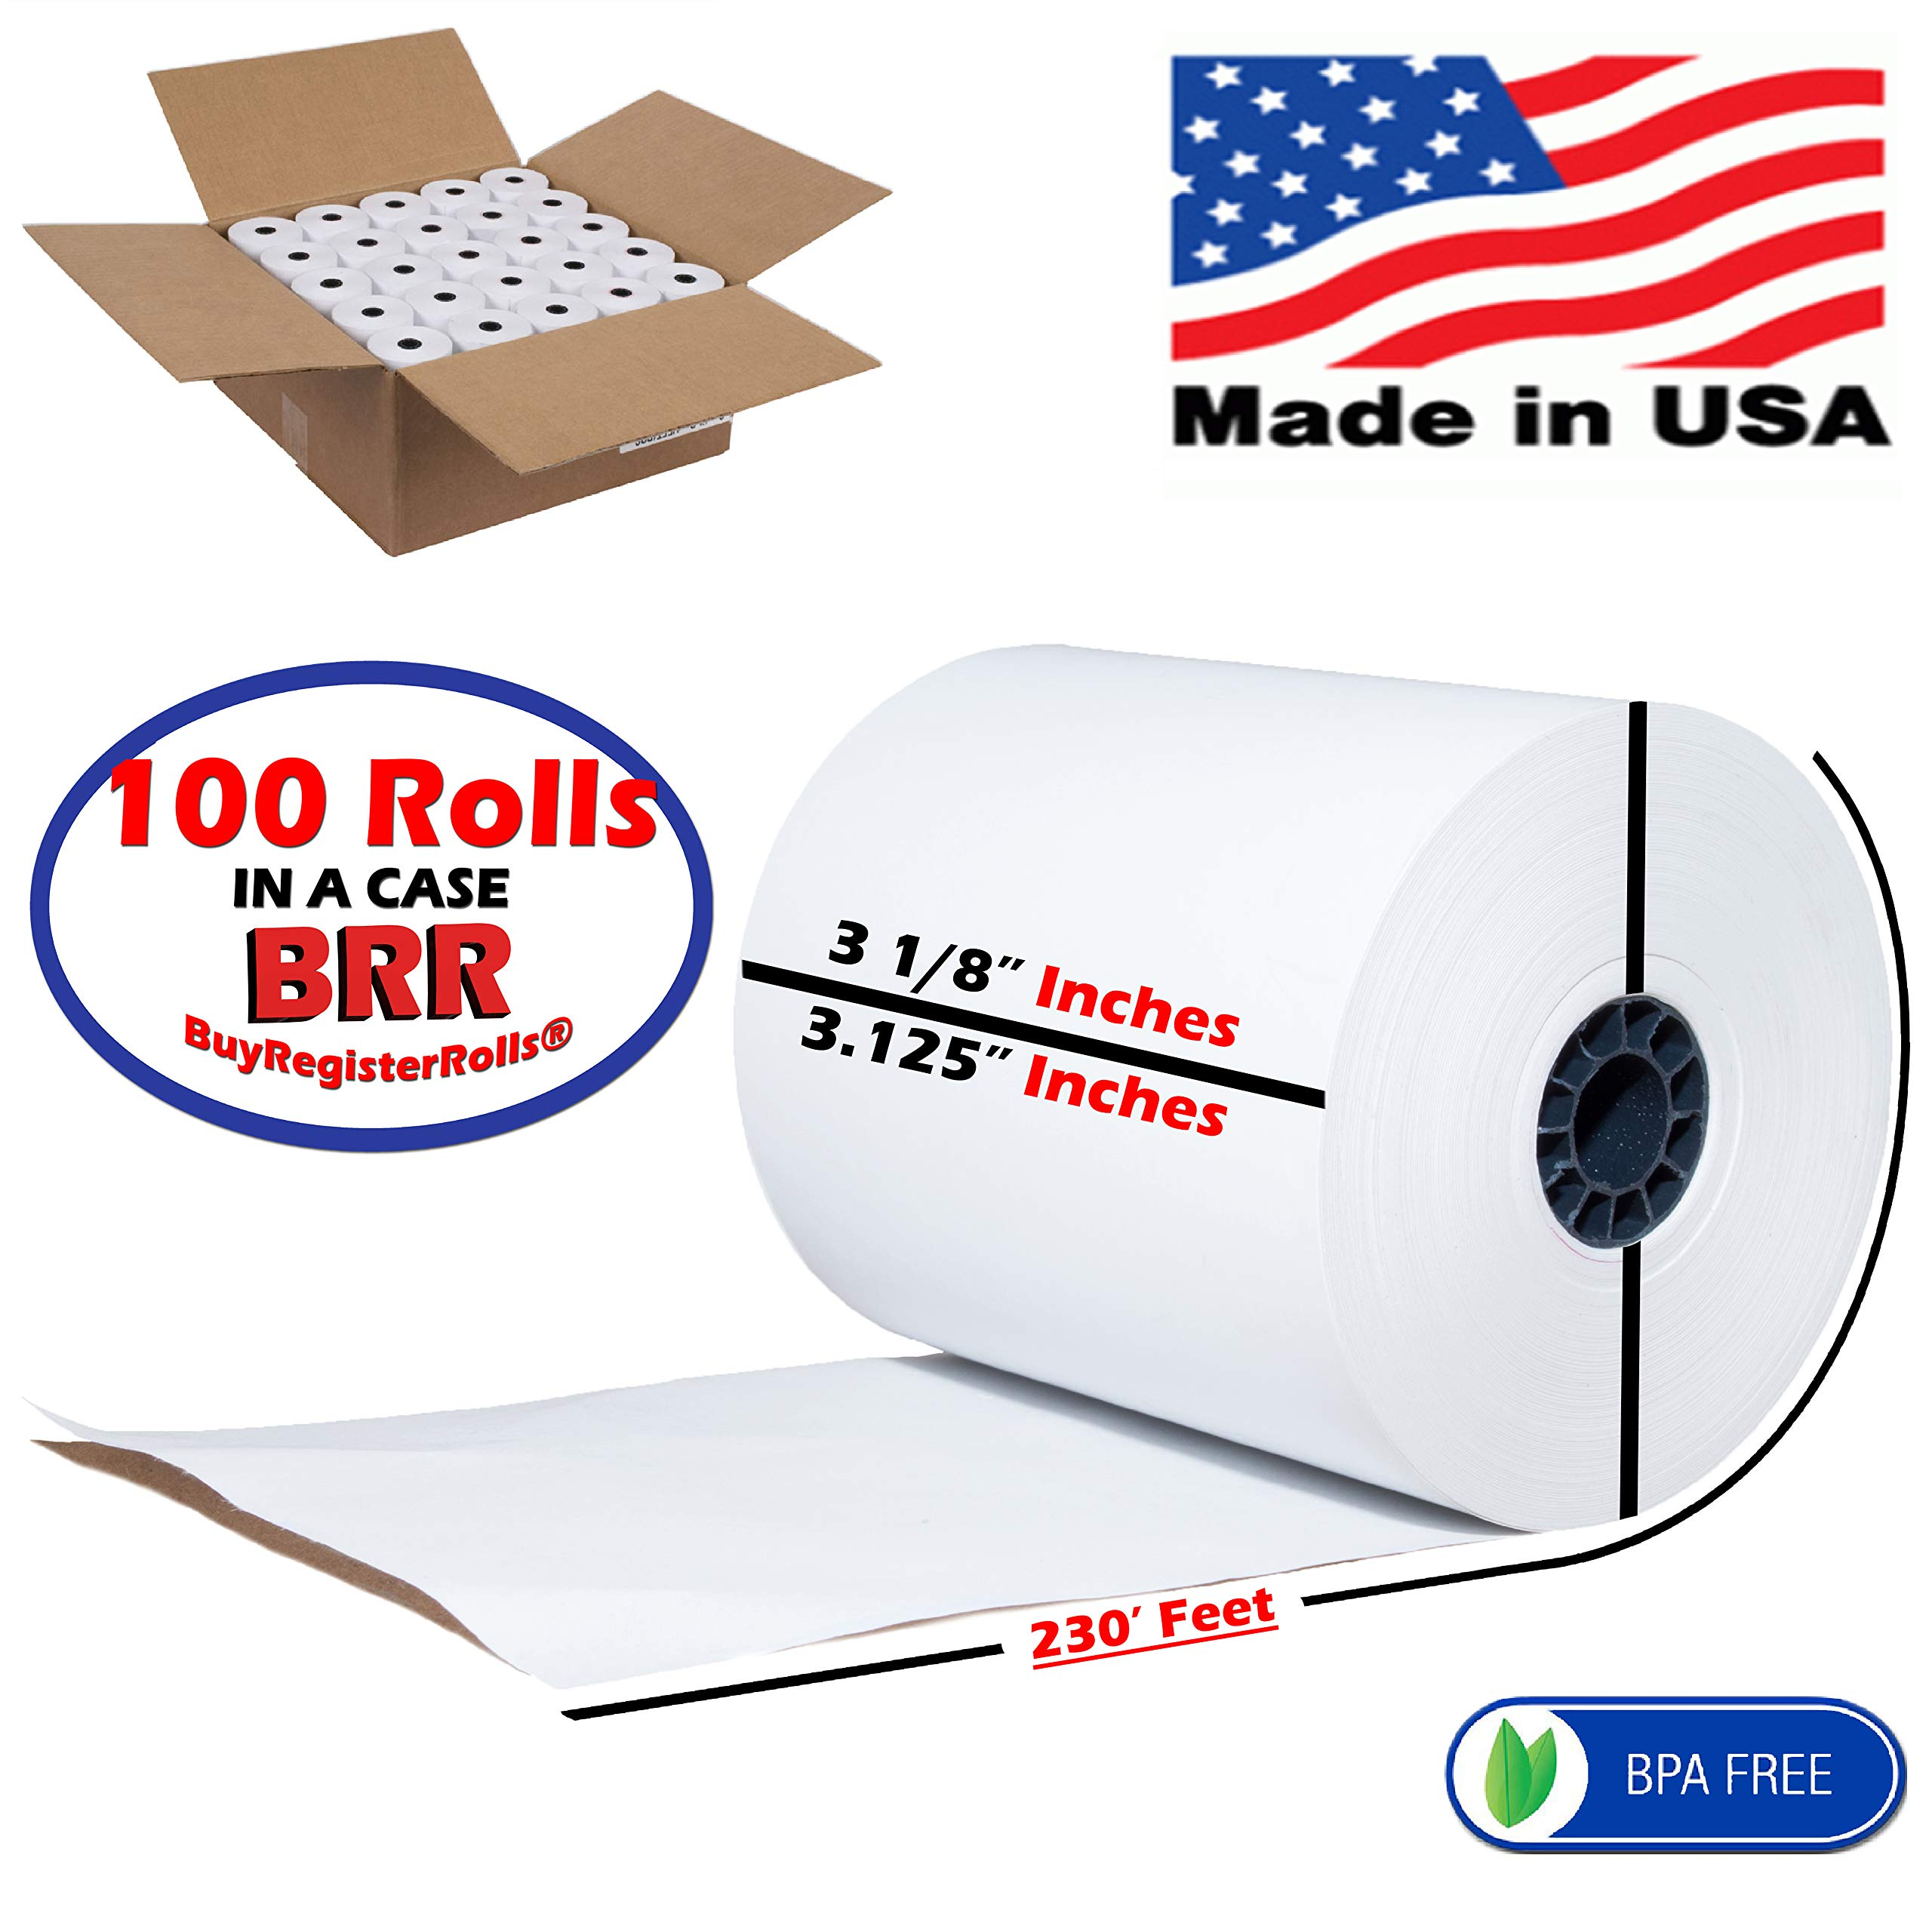 3 1/8 x 230 Thermal Paper roll 100 Pack | Pack MORE PAPER THAN OTHERS | SUPER SAVER VALUE PACK | by BuyRegisterRolls (Image #1)